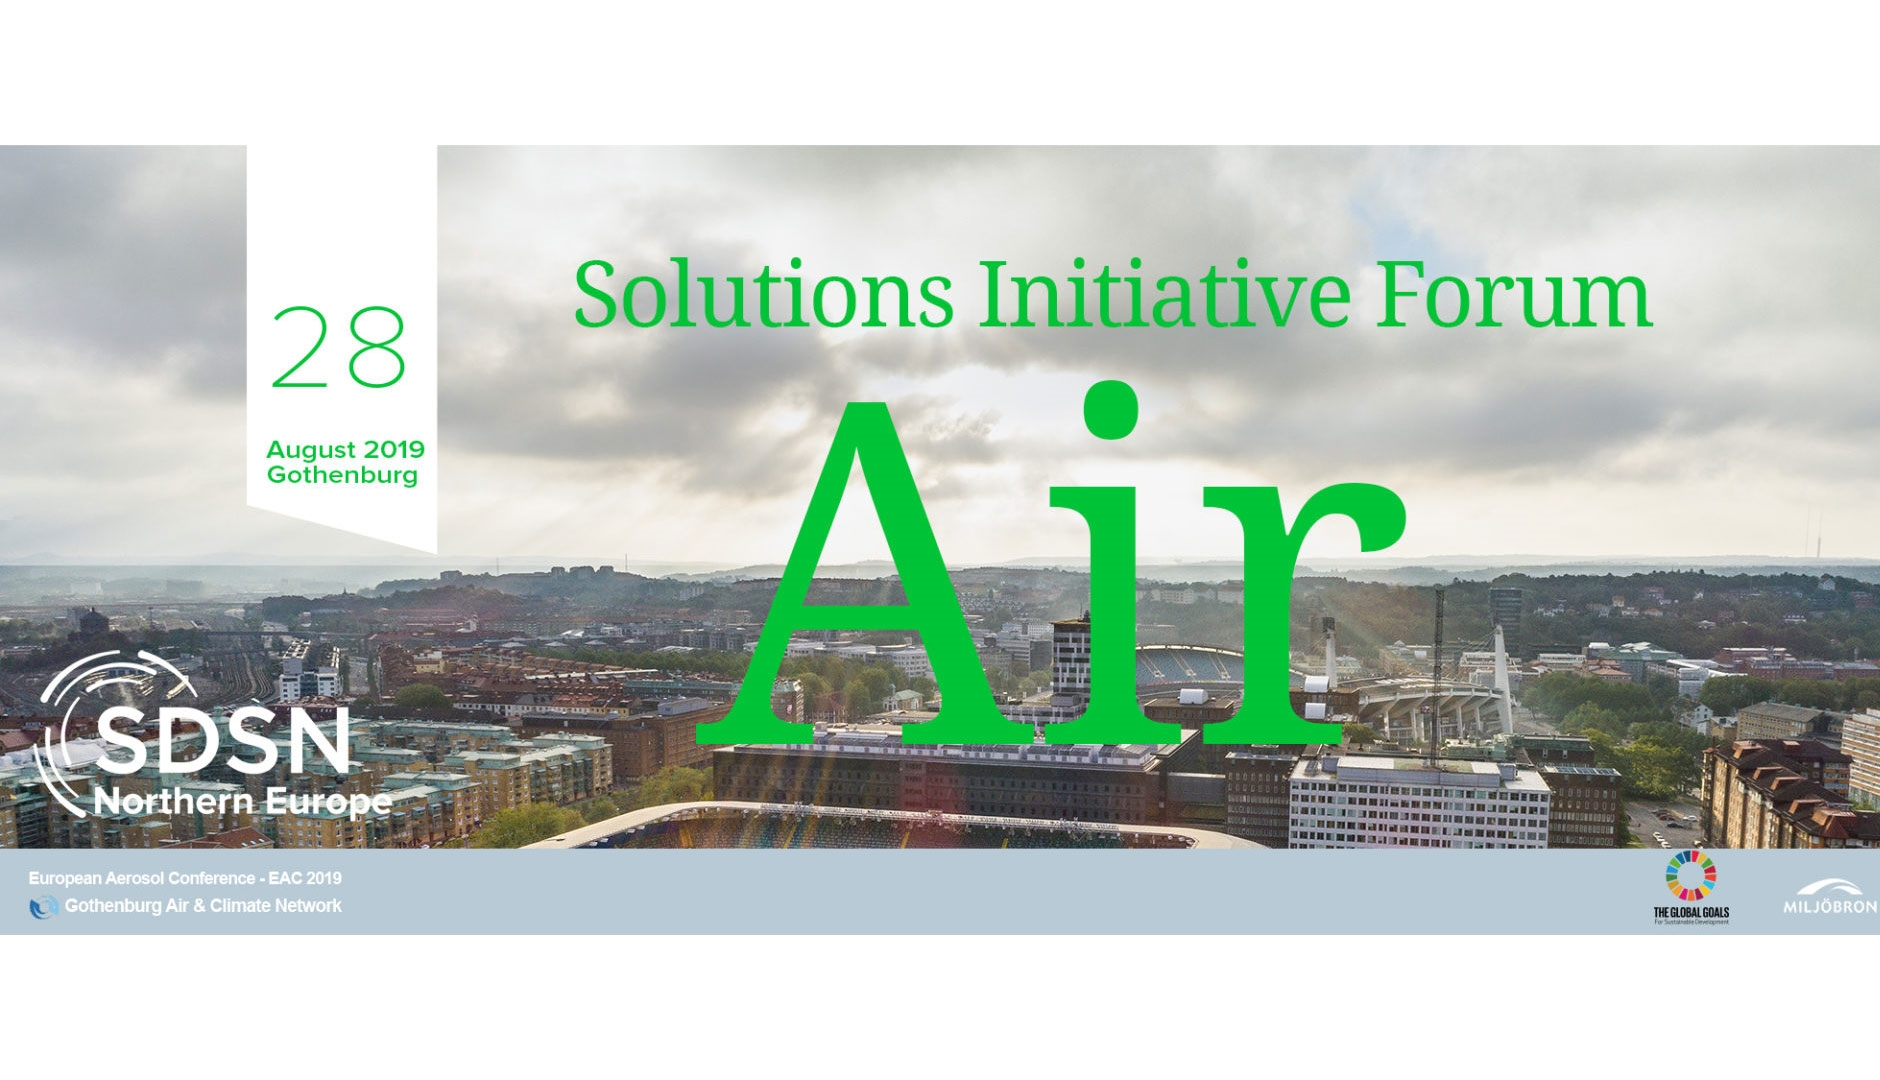 SDSN Northern Europe's Solution Initiative Forum (SIF) AIR